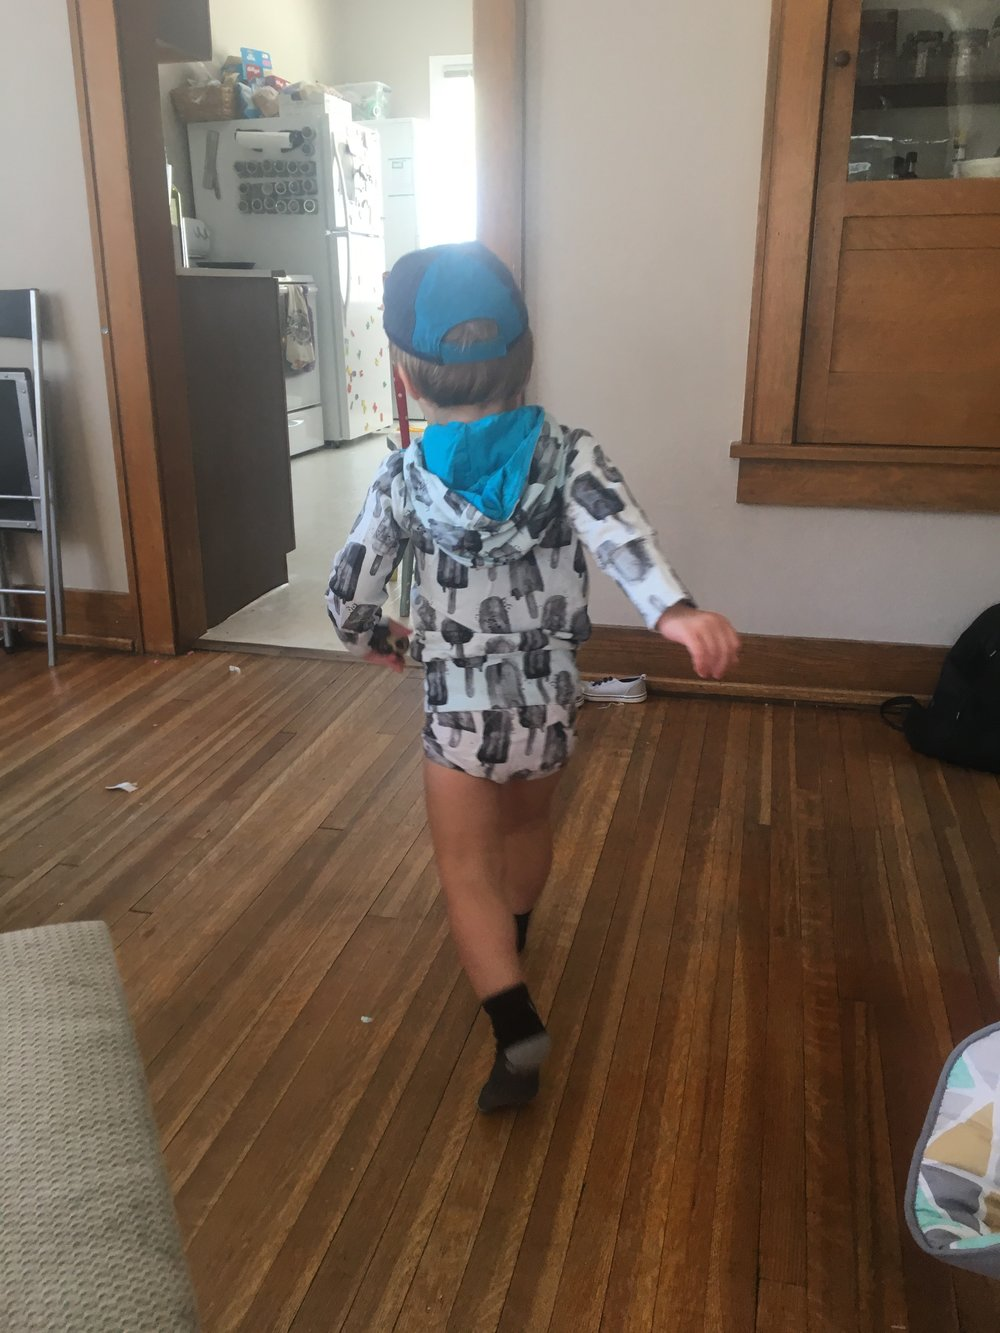 Cuss picked his own outfit <3